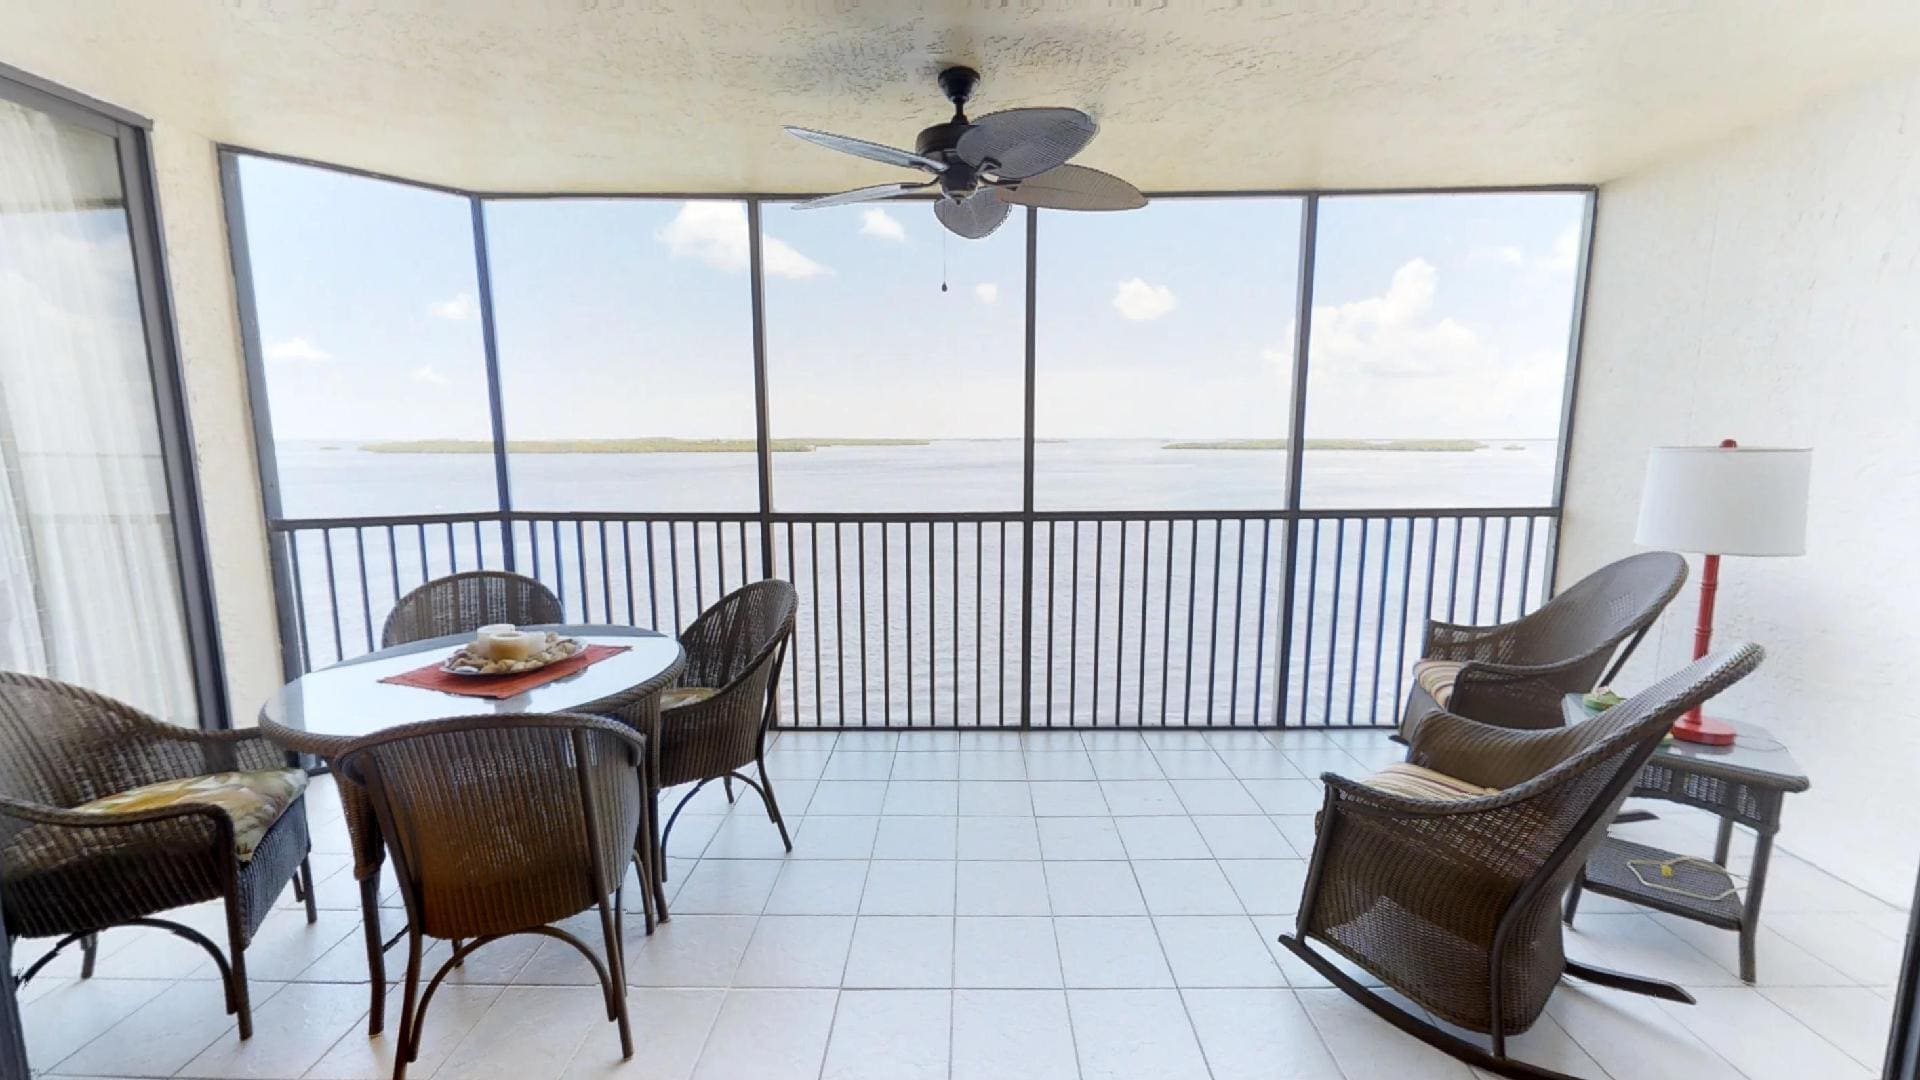 Property Image 2 - Relaxing 2 Bedroom Condo with Spectacular View from Private Lanai